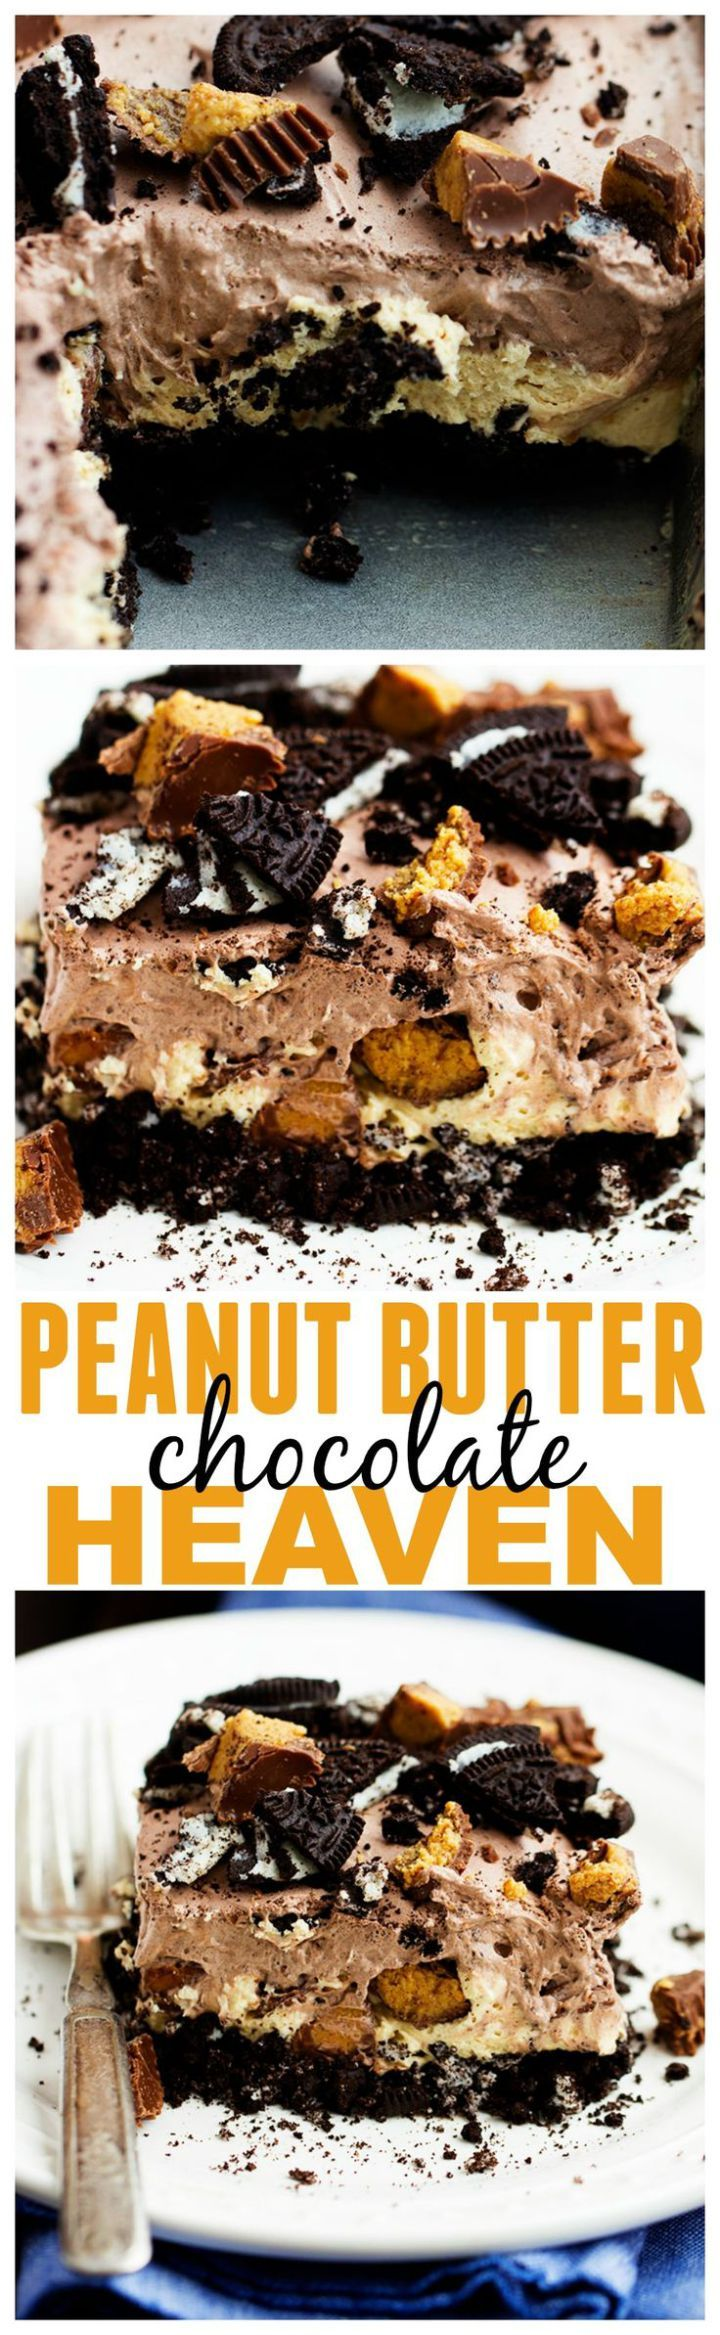 Peanut Butter Chocolate Heaven - An oreo crust, a creamy peanut butter cheesecake center with peanut butter cups, and a chocolate pudding whipped topping. And no baking required! Can you see why this is heaven?